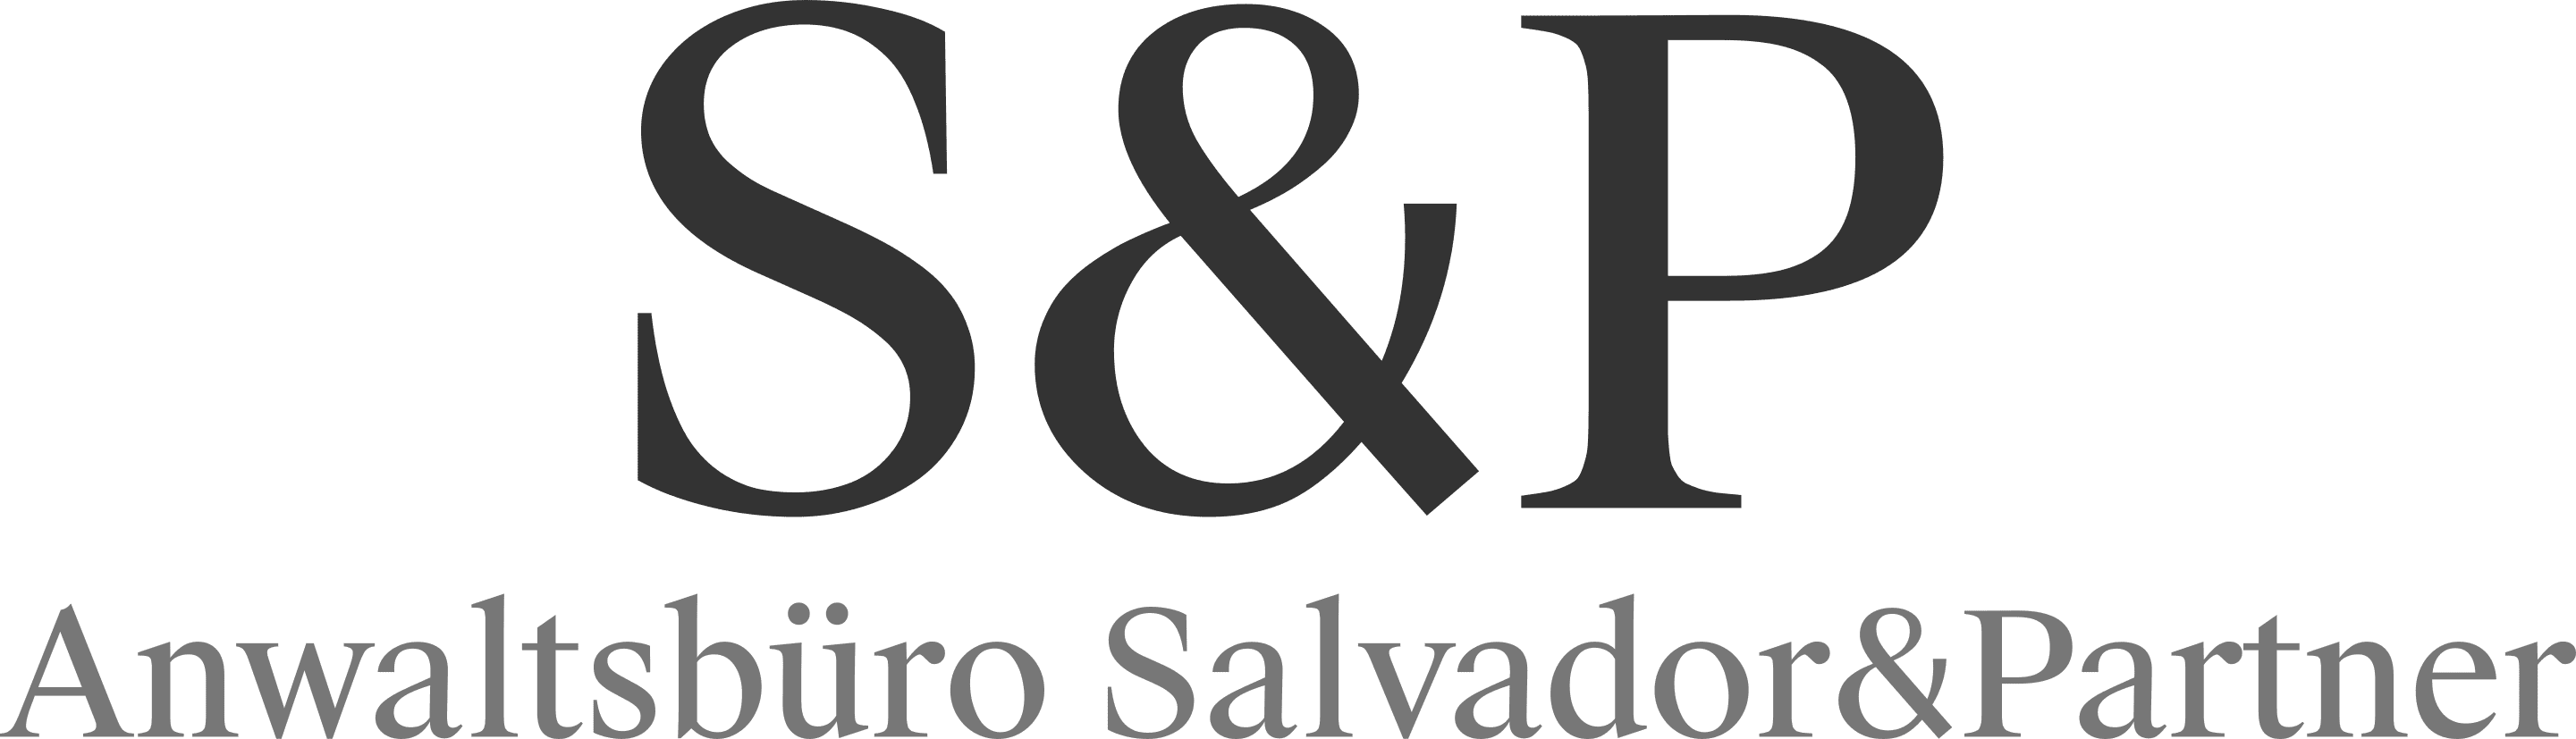 Salvador&Partner